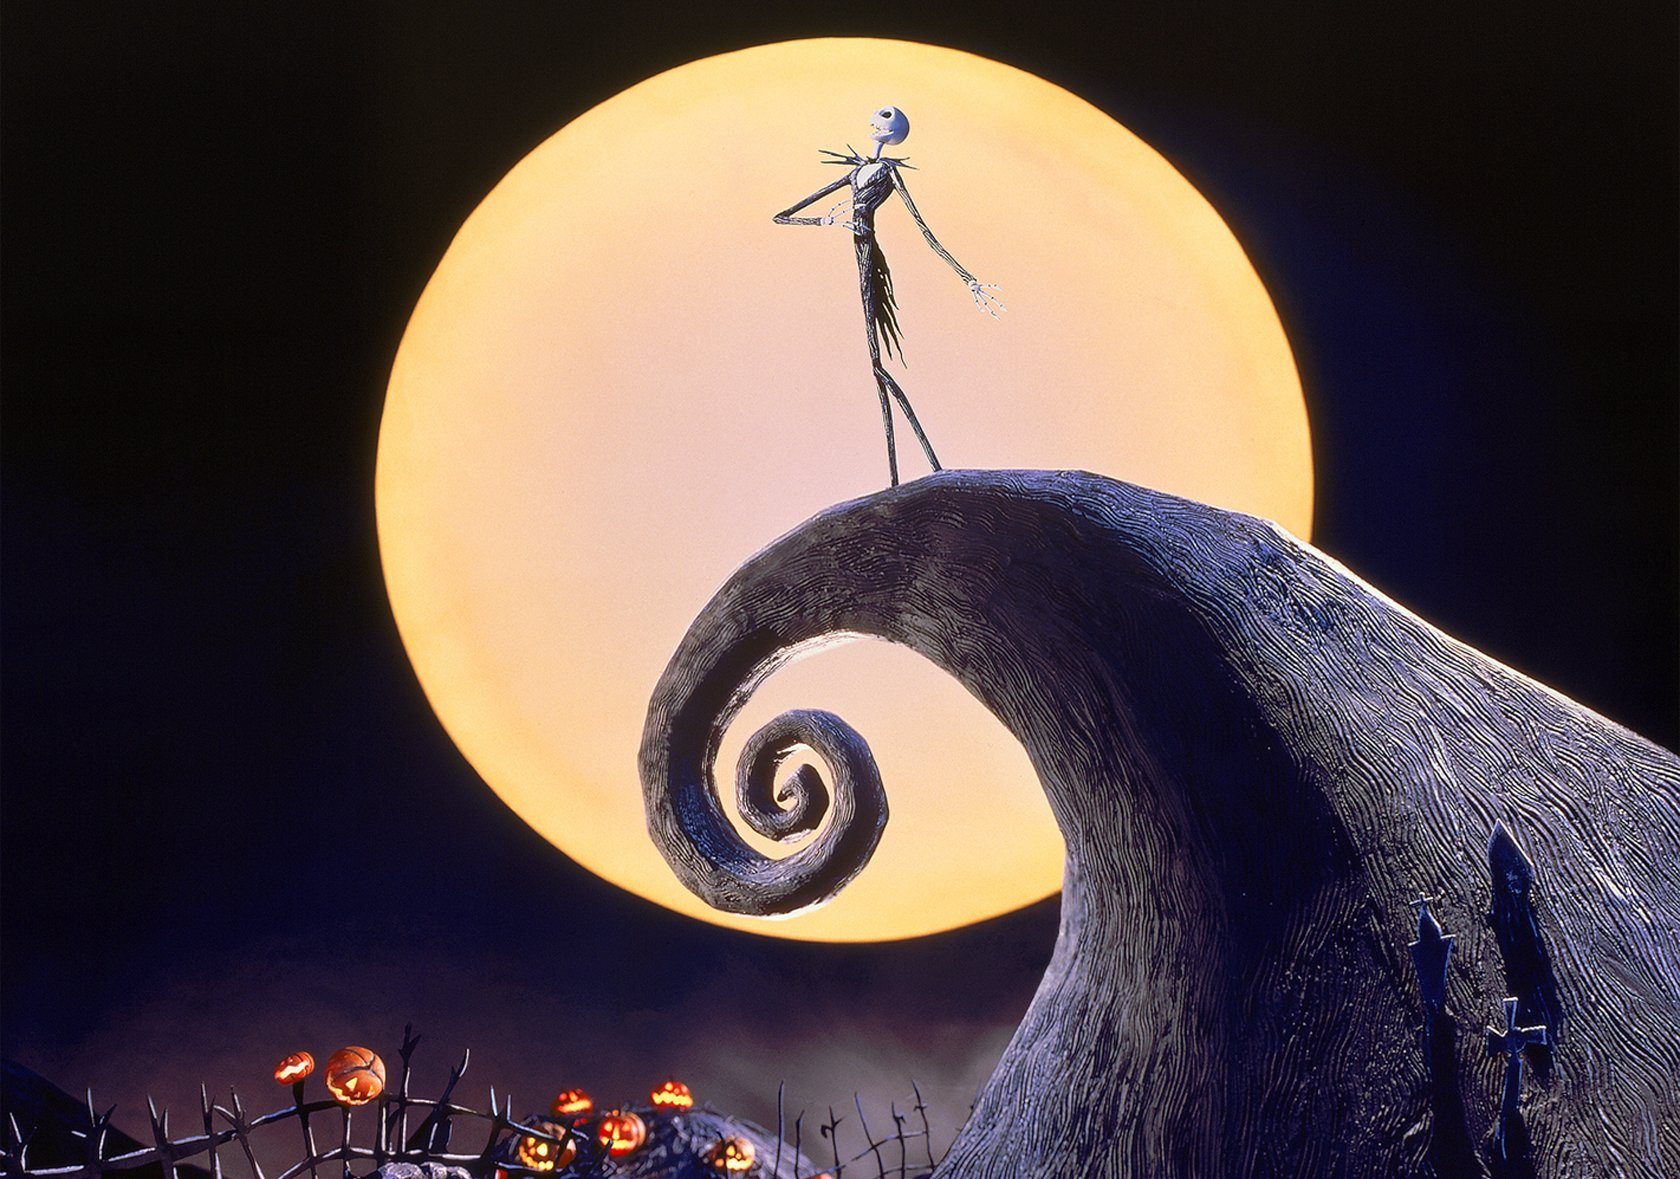 HD Wallpaper | Background Image ID:32532. 1680x1179 Movie The Nightmare Before Christmas. AlphaSystem. 61 48,409 8 0